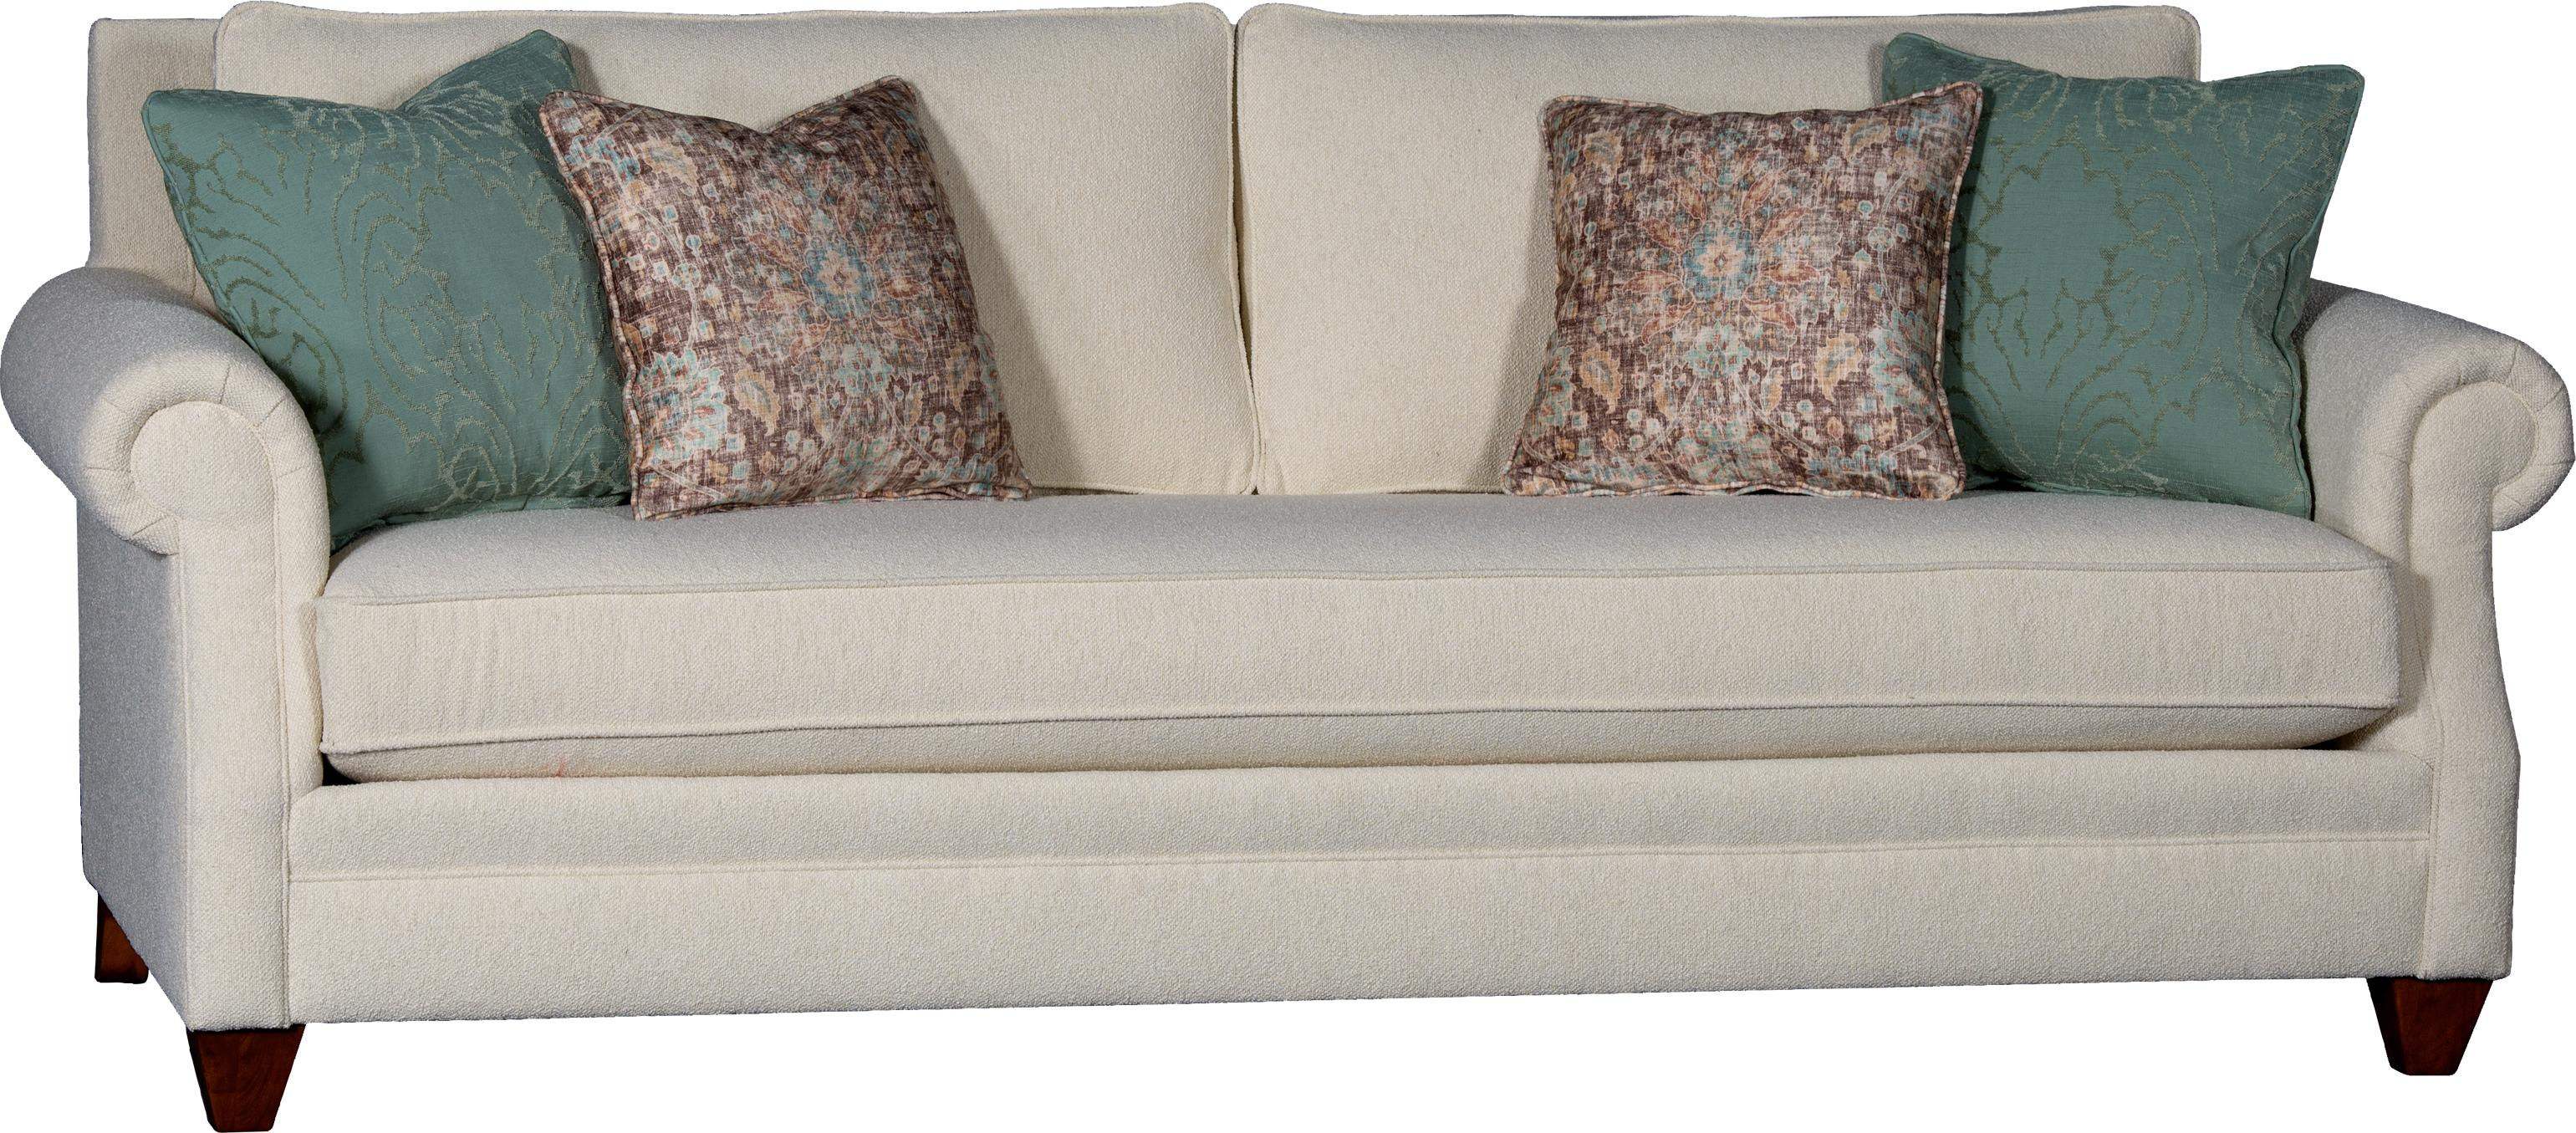 7240 Sofa by Mayo at Wilcox Furniture